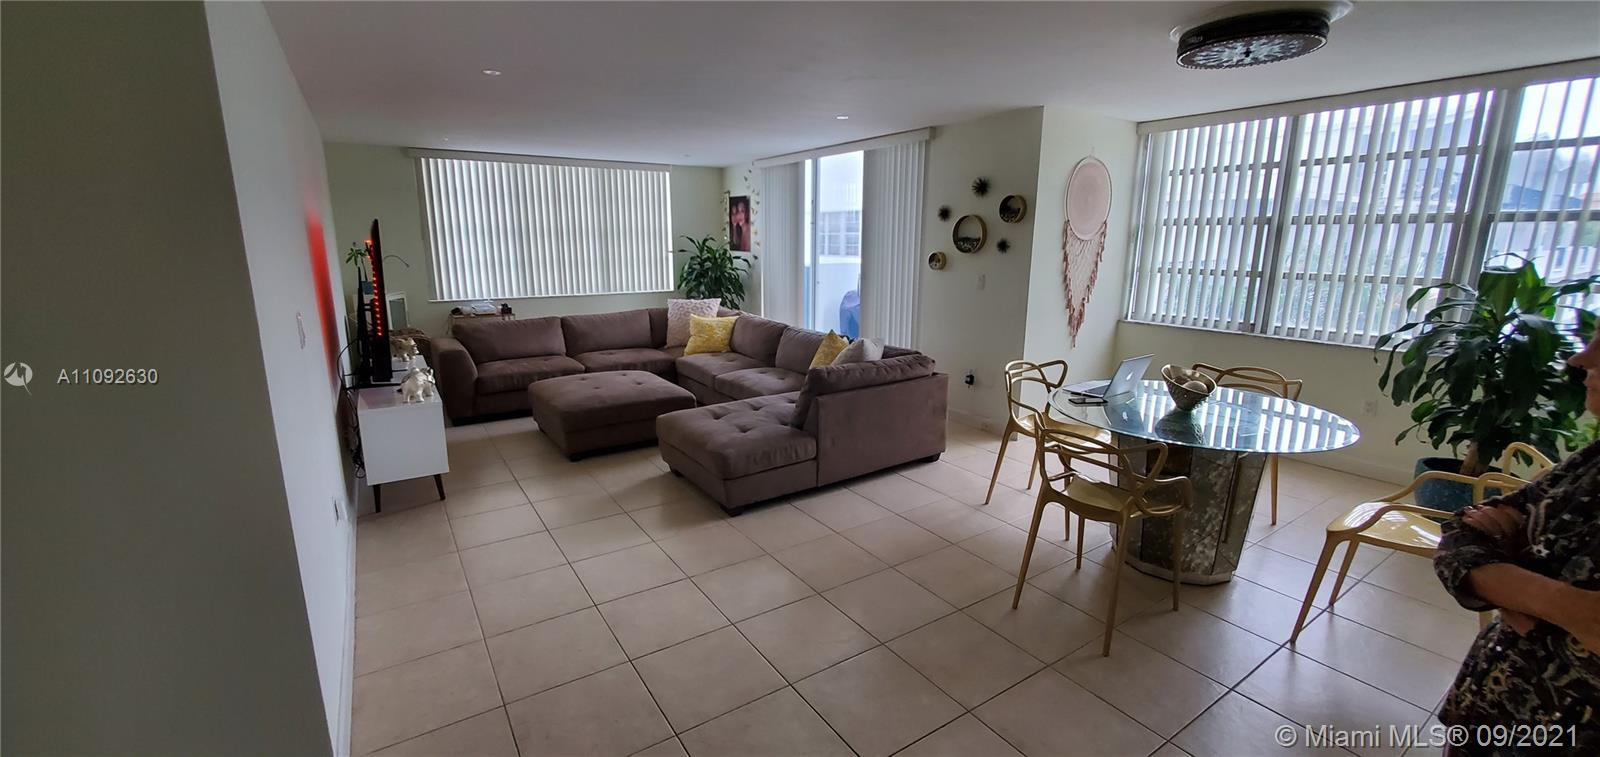 LOCATION LOCATION LOCATION! Bueatiful, partially upgraded 2/2 in the Heart of Aventura.  Minutes fro